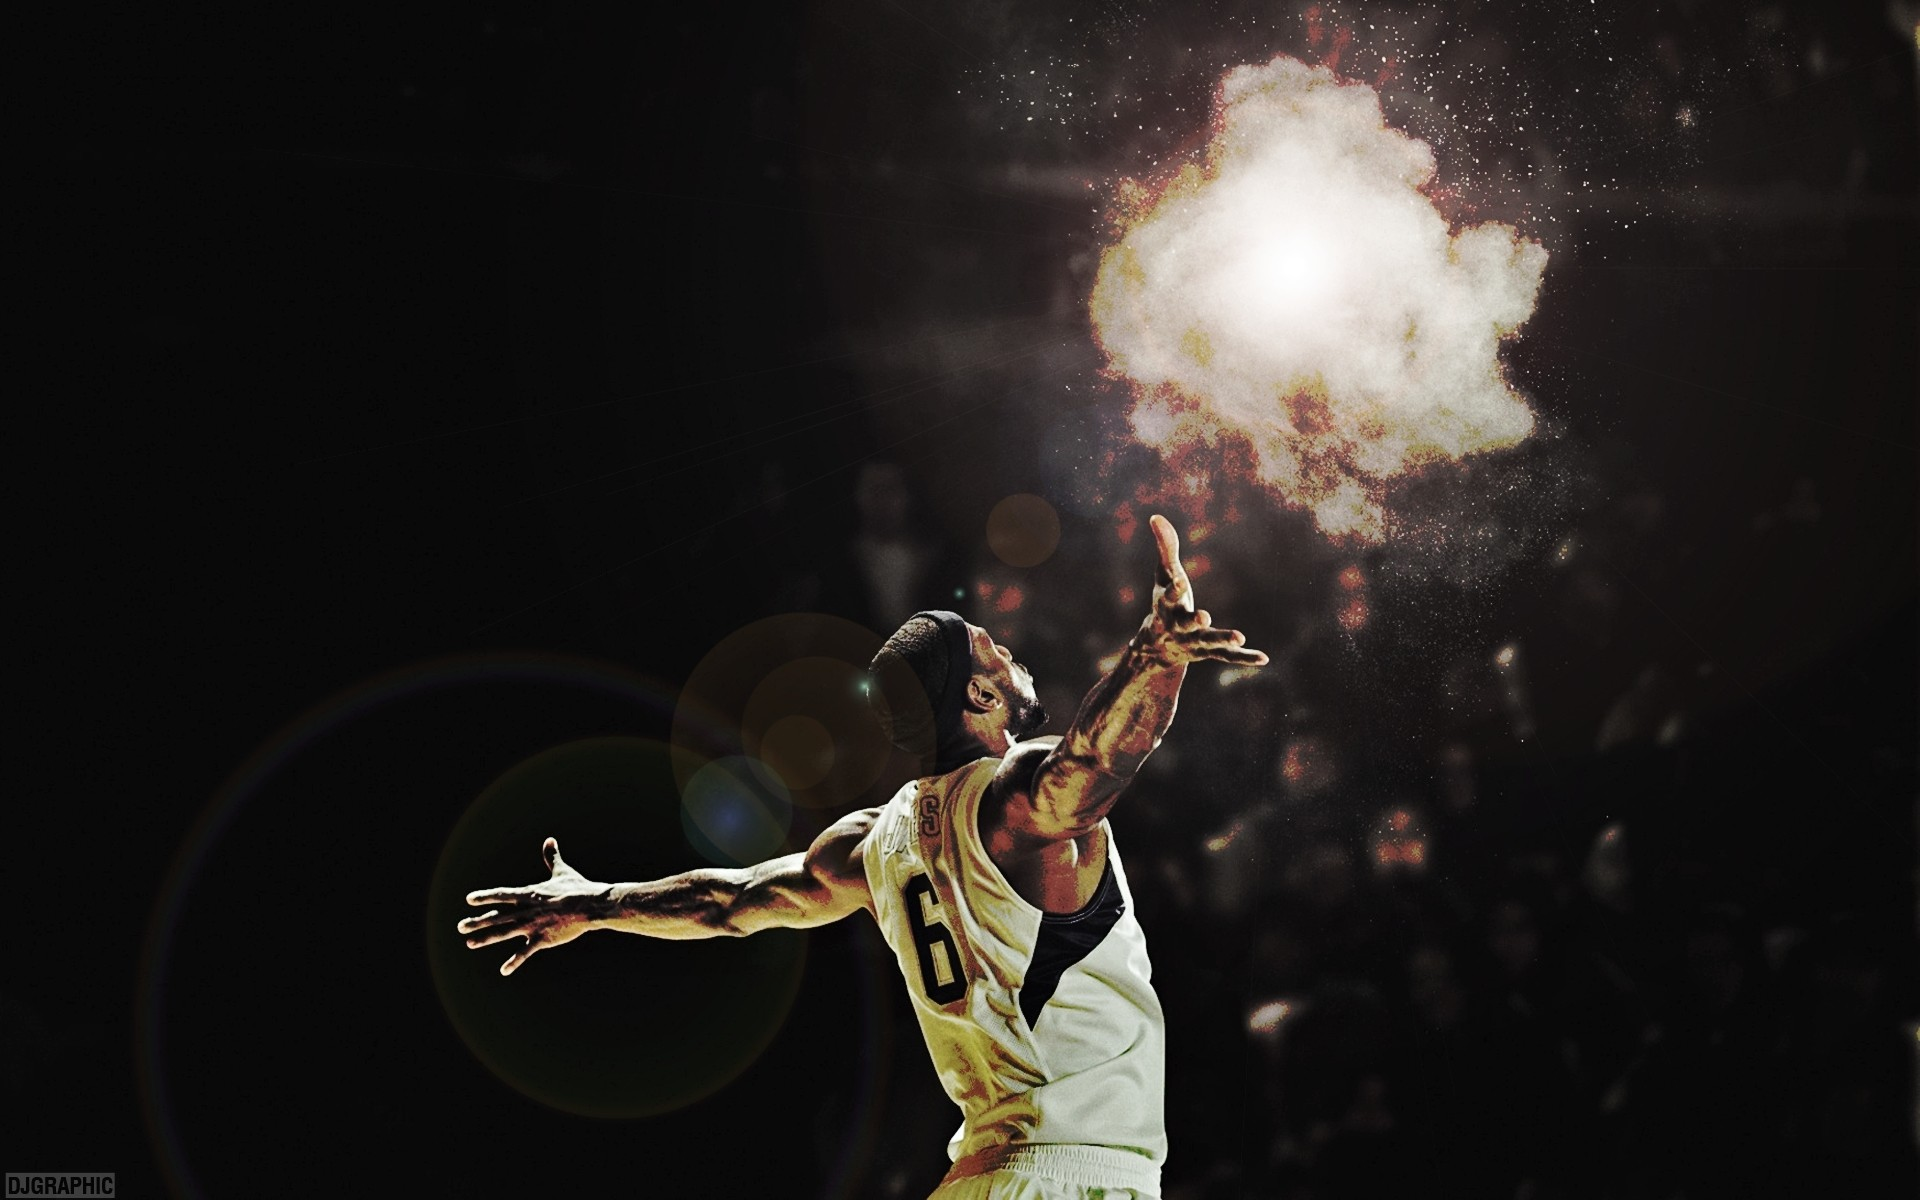 1920x1200 Nba basketball lebron james miami heat wallpaper |  | 85349 |  WallpaperUP